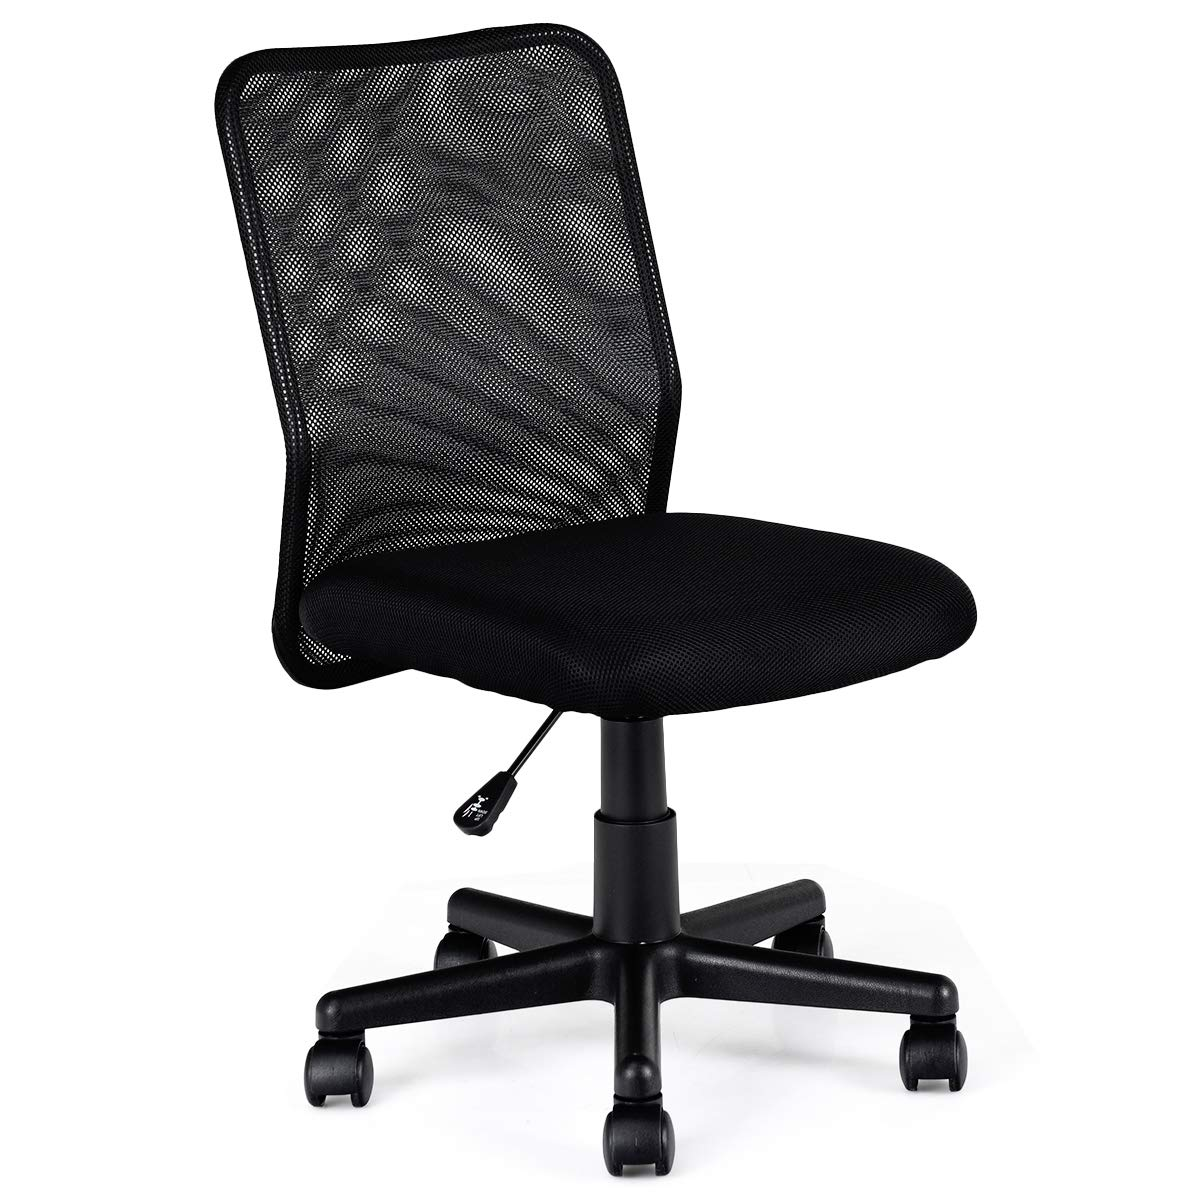 Safeplus Adjustable Ergonomic Mesh Office Chair, Mid-Back Swivel Lumbar Support Desk Chair in Home-Office, 1, Black